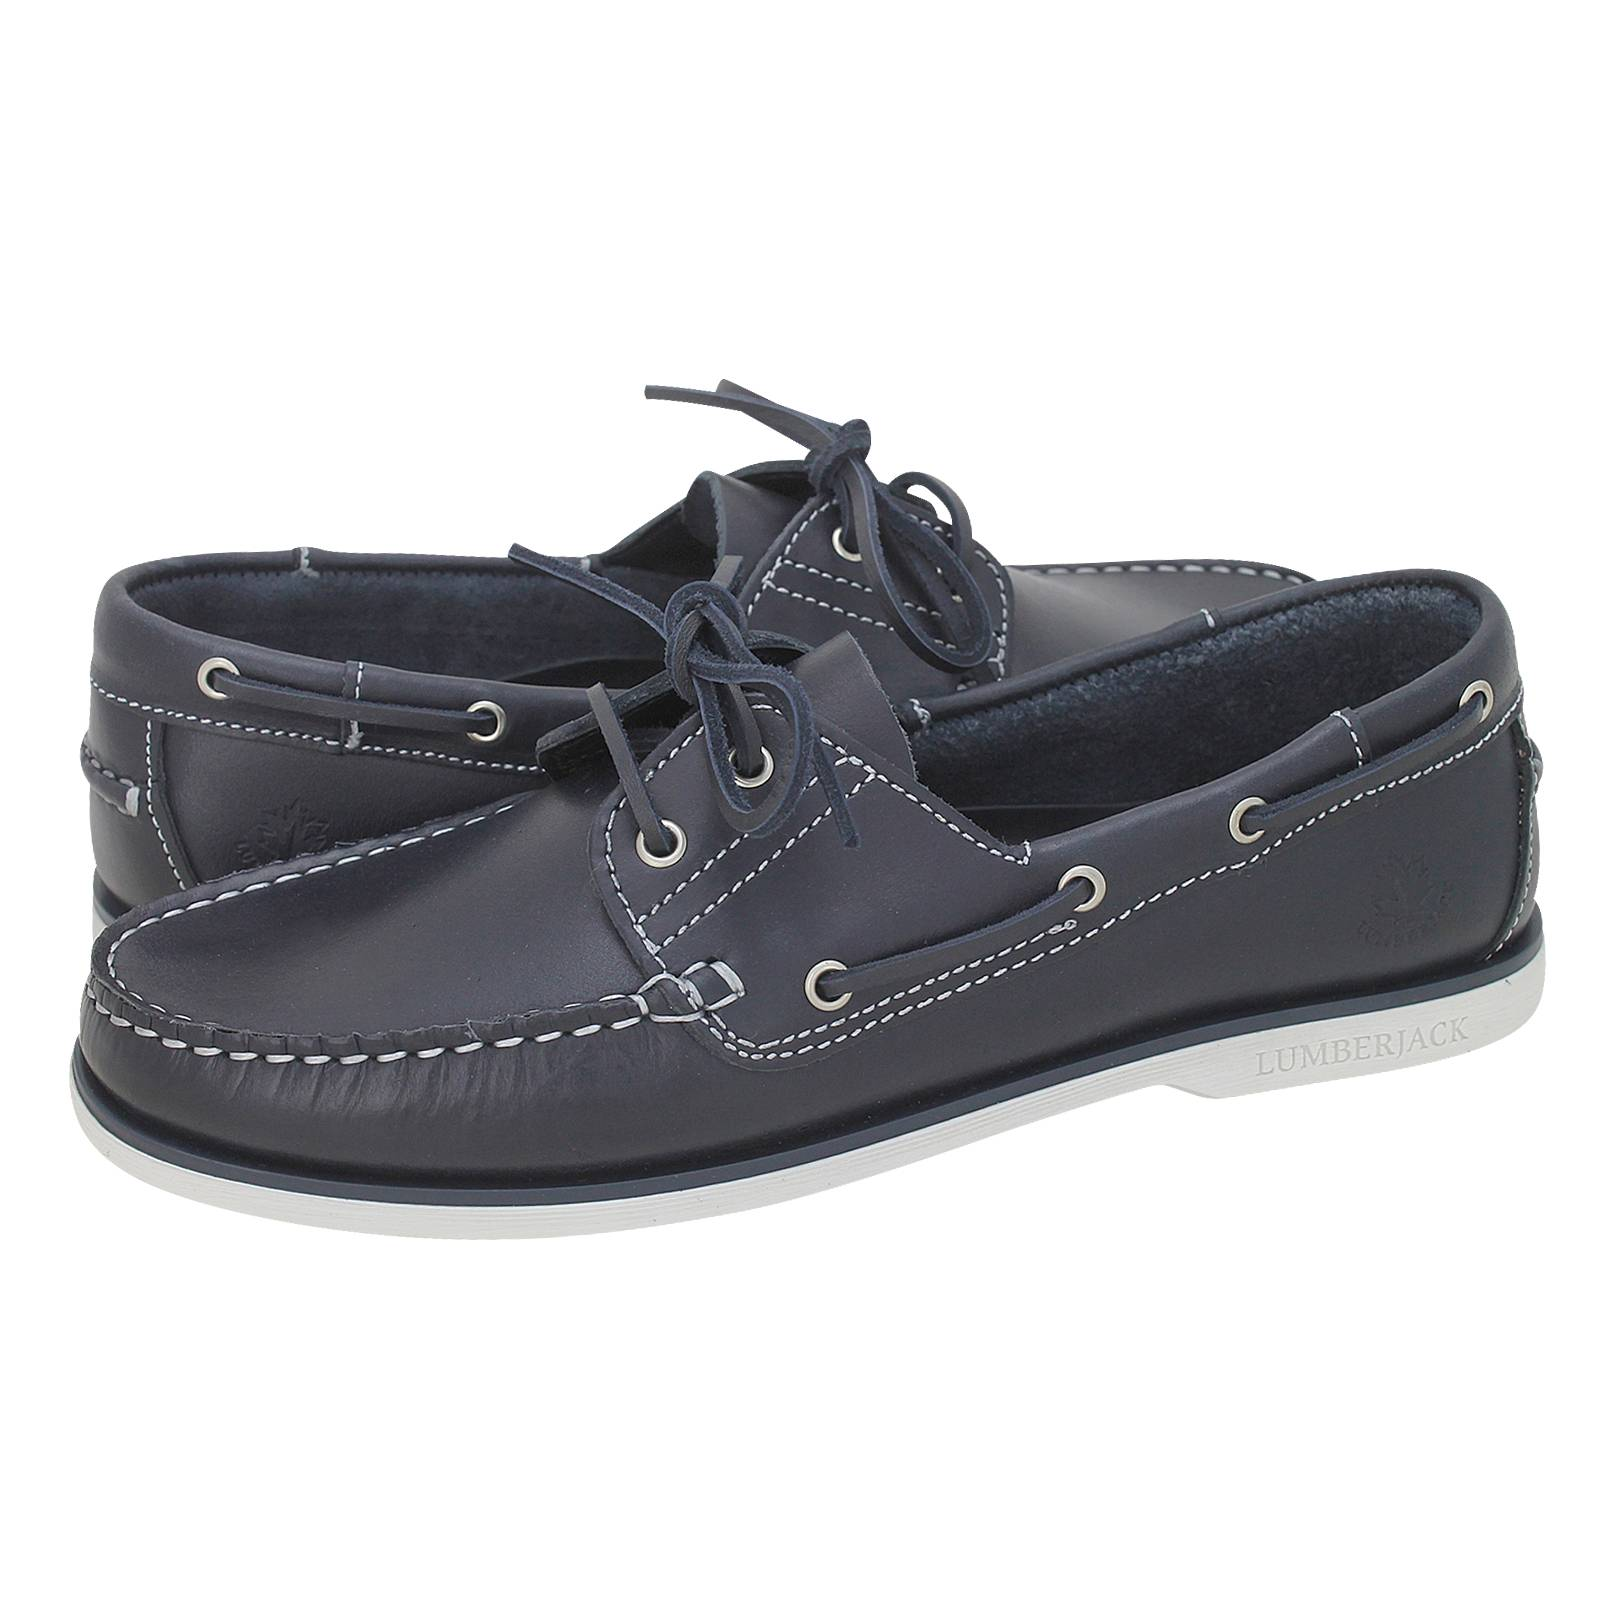 3a9795ce4244 Navigator Icon - Lumberjack Men s boat shoes made of leather ...